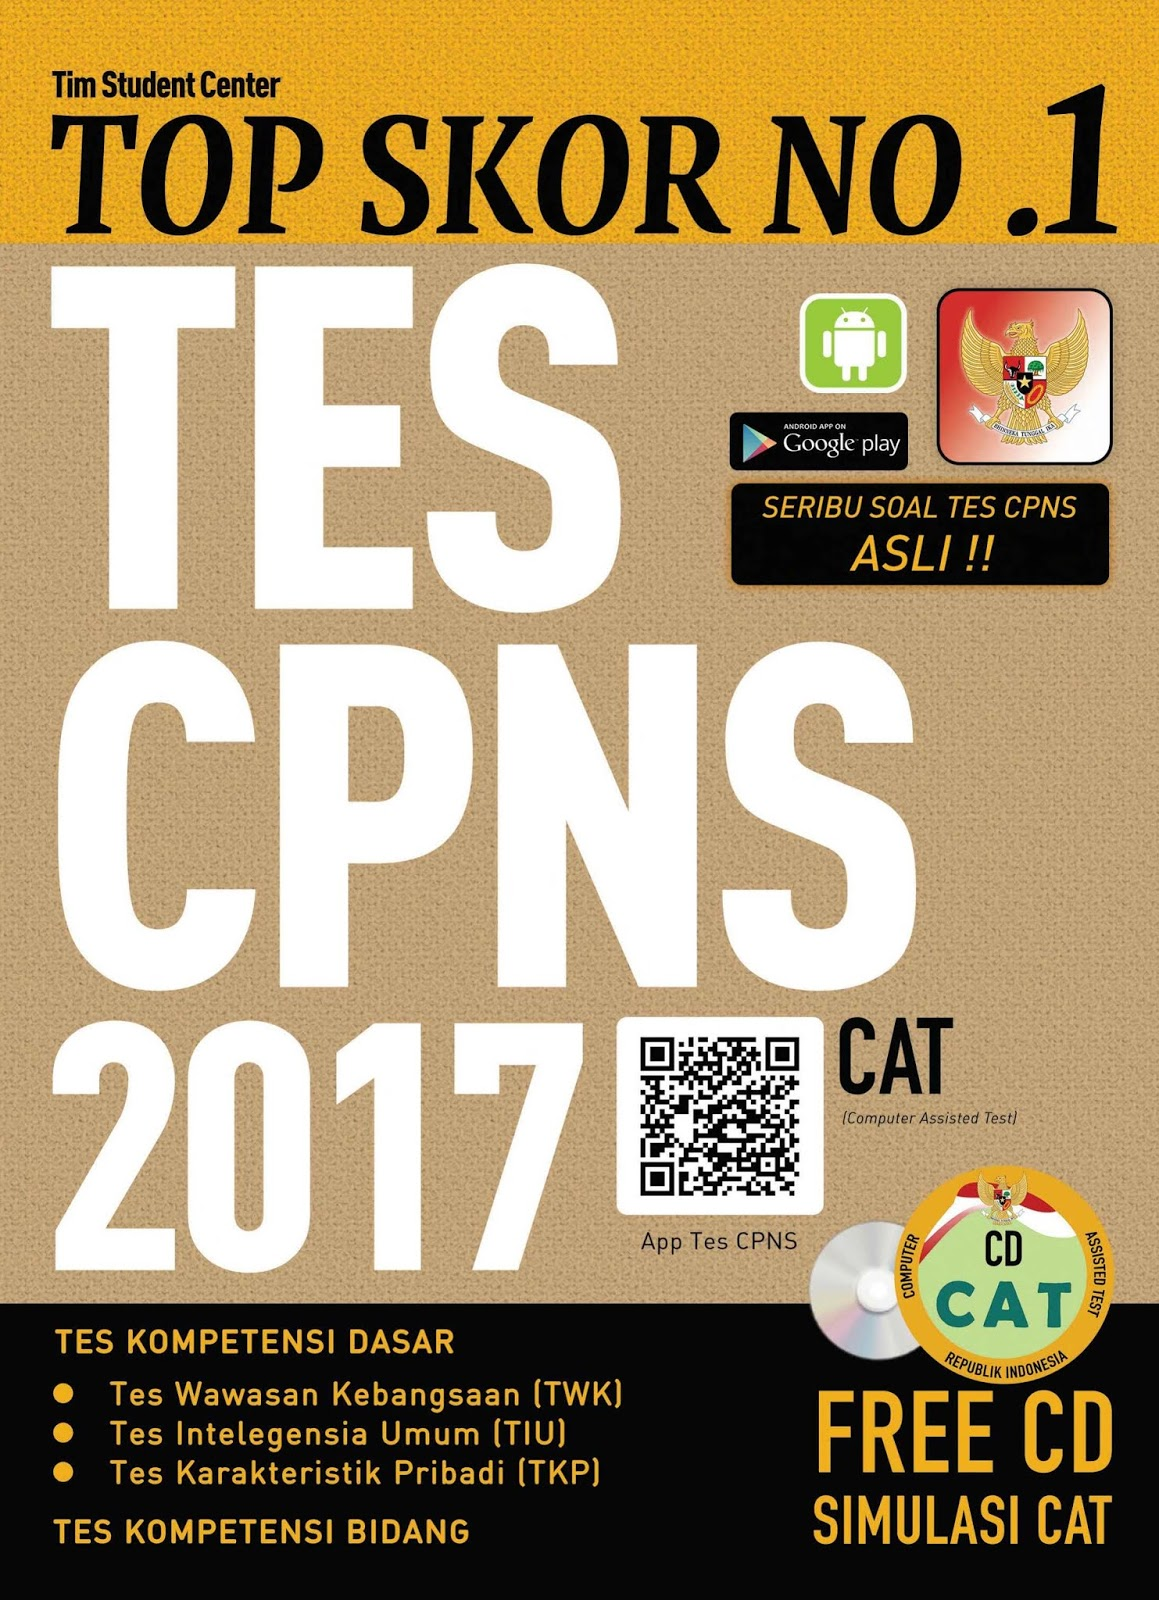 Download Top Skor No. 1 Tes CPNS 2017